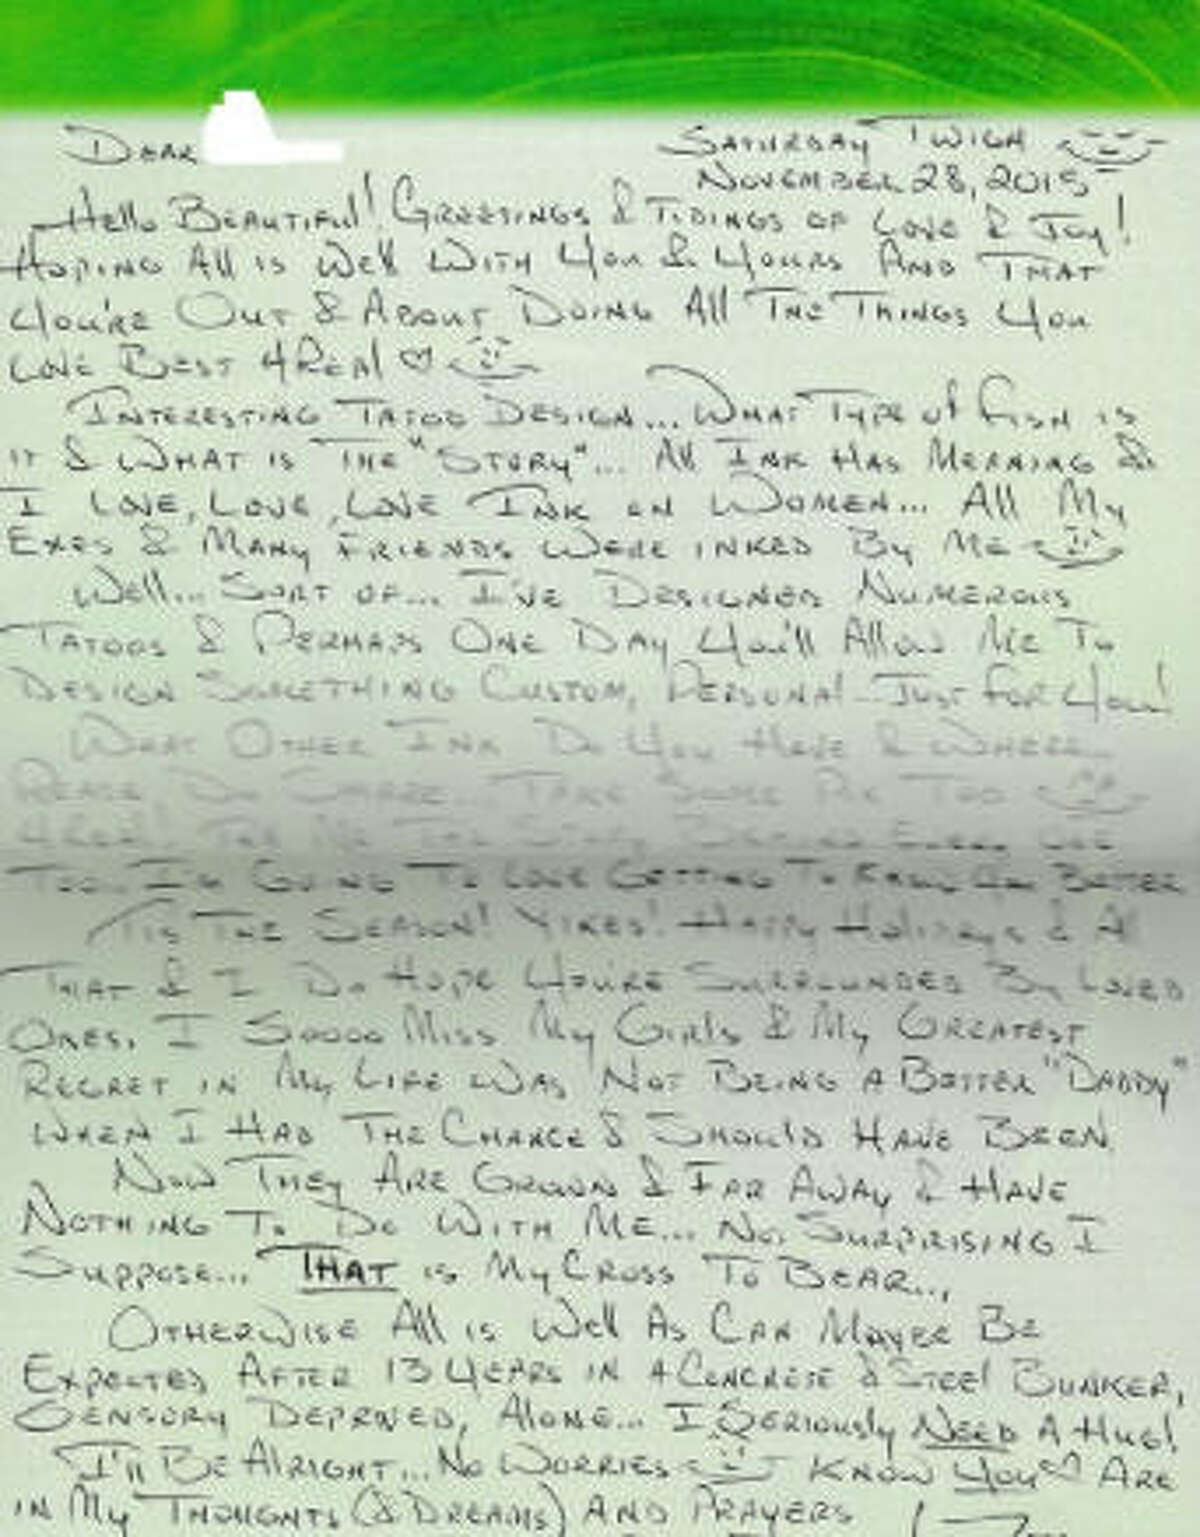 Letters allegedly written by Anthony Shore are now available online for purchase.